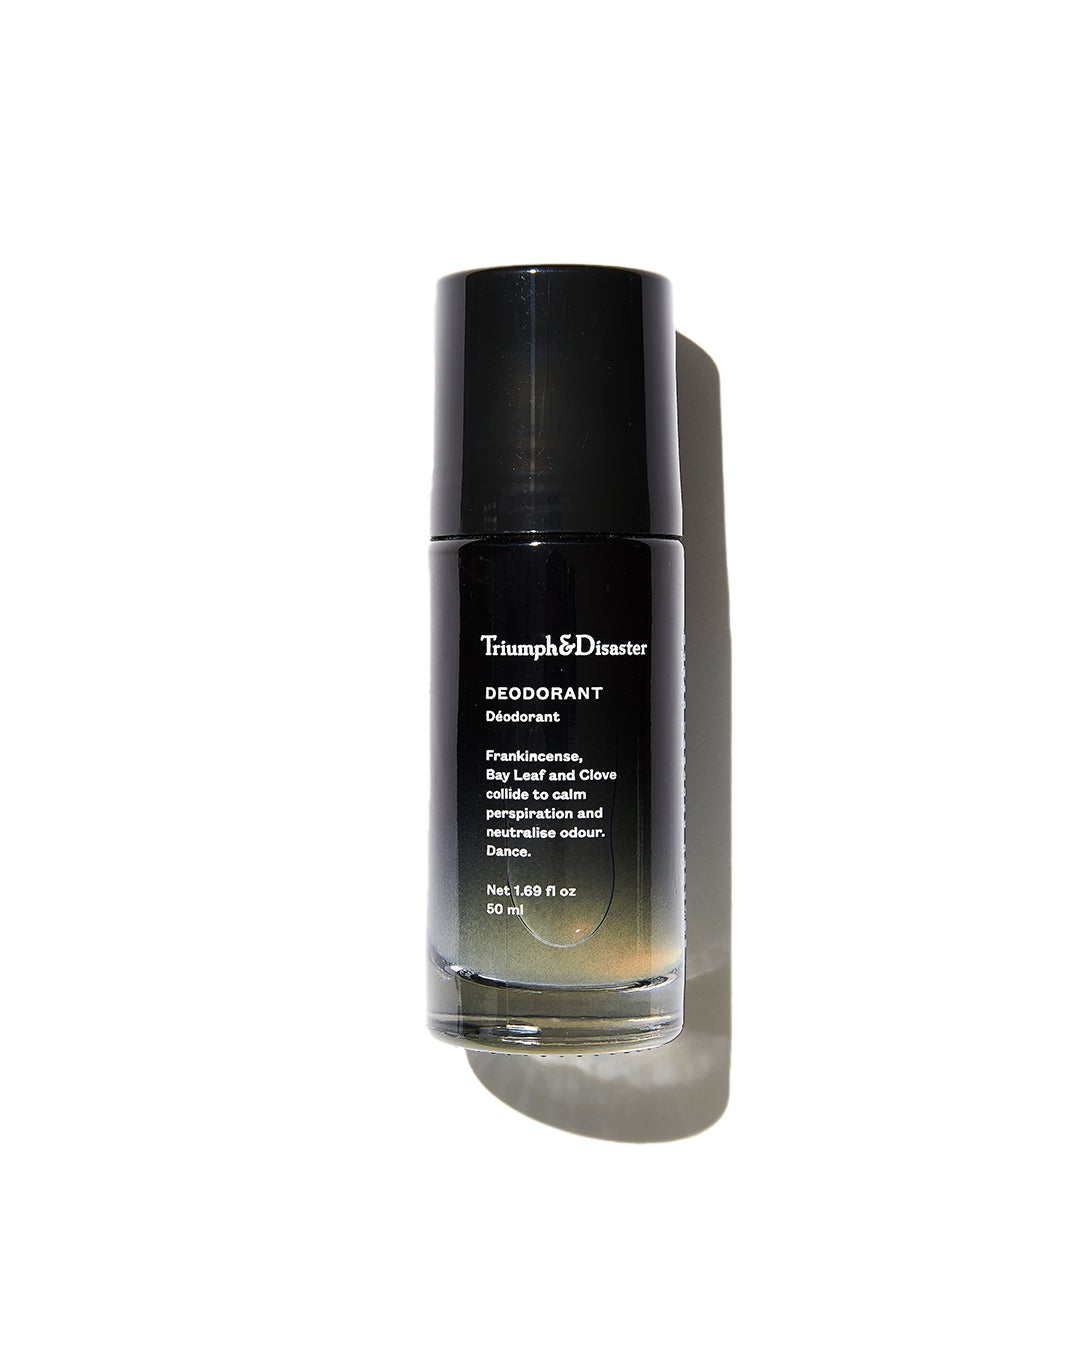 Triumph & Disaster Deodorant in black glass bottle on white background